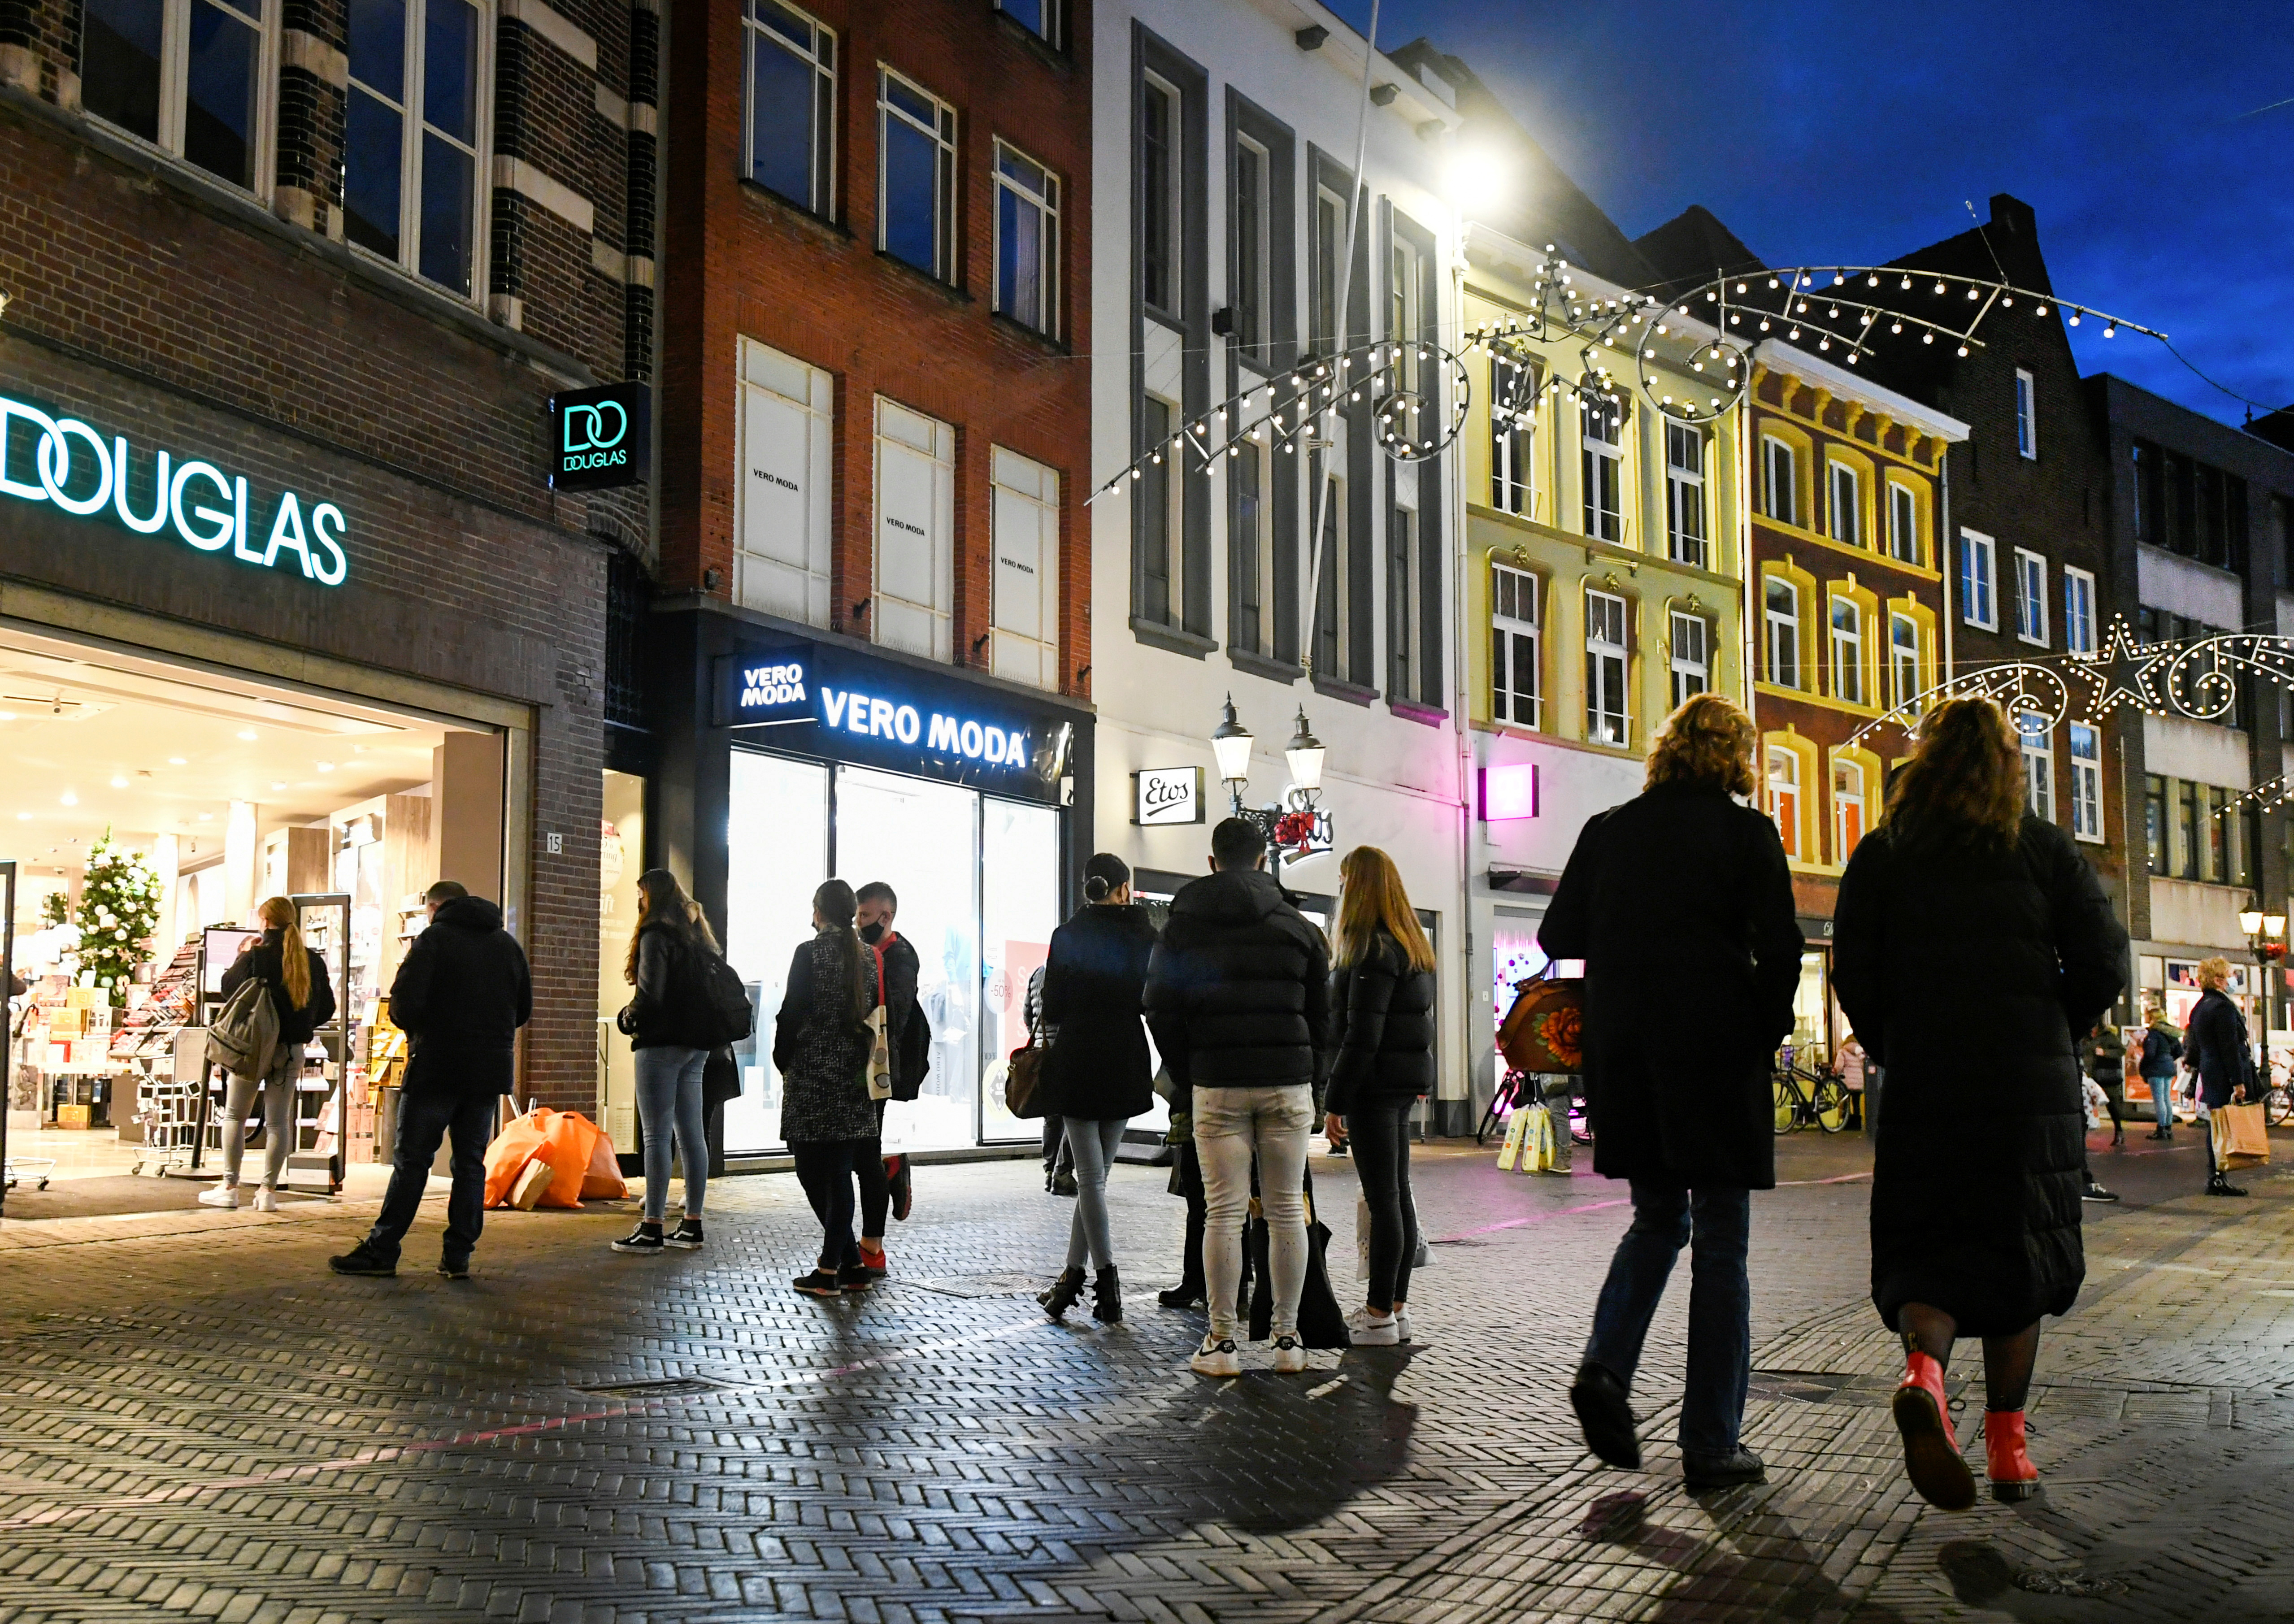 People do their last Christmas shopping before The Netherlands will go into a tough second lockdown, amid the coronavirus disease (COVID-19) outbreak, in the city centre of Venlo, Netherlands December 14, 2020. REUTERS/Piroschka van de Wouw